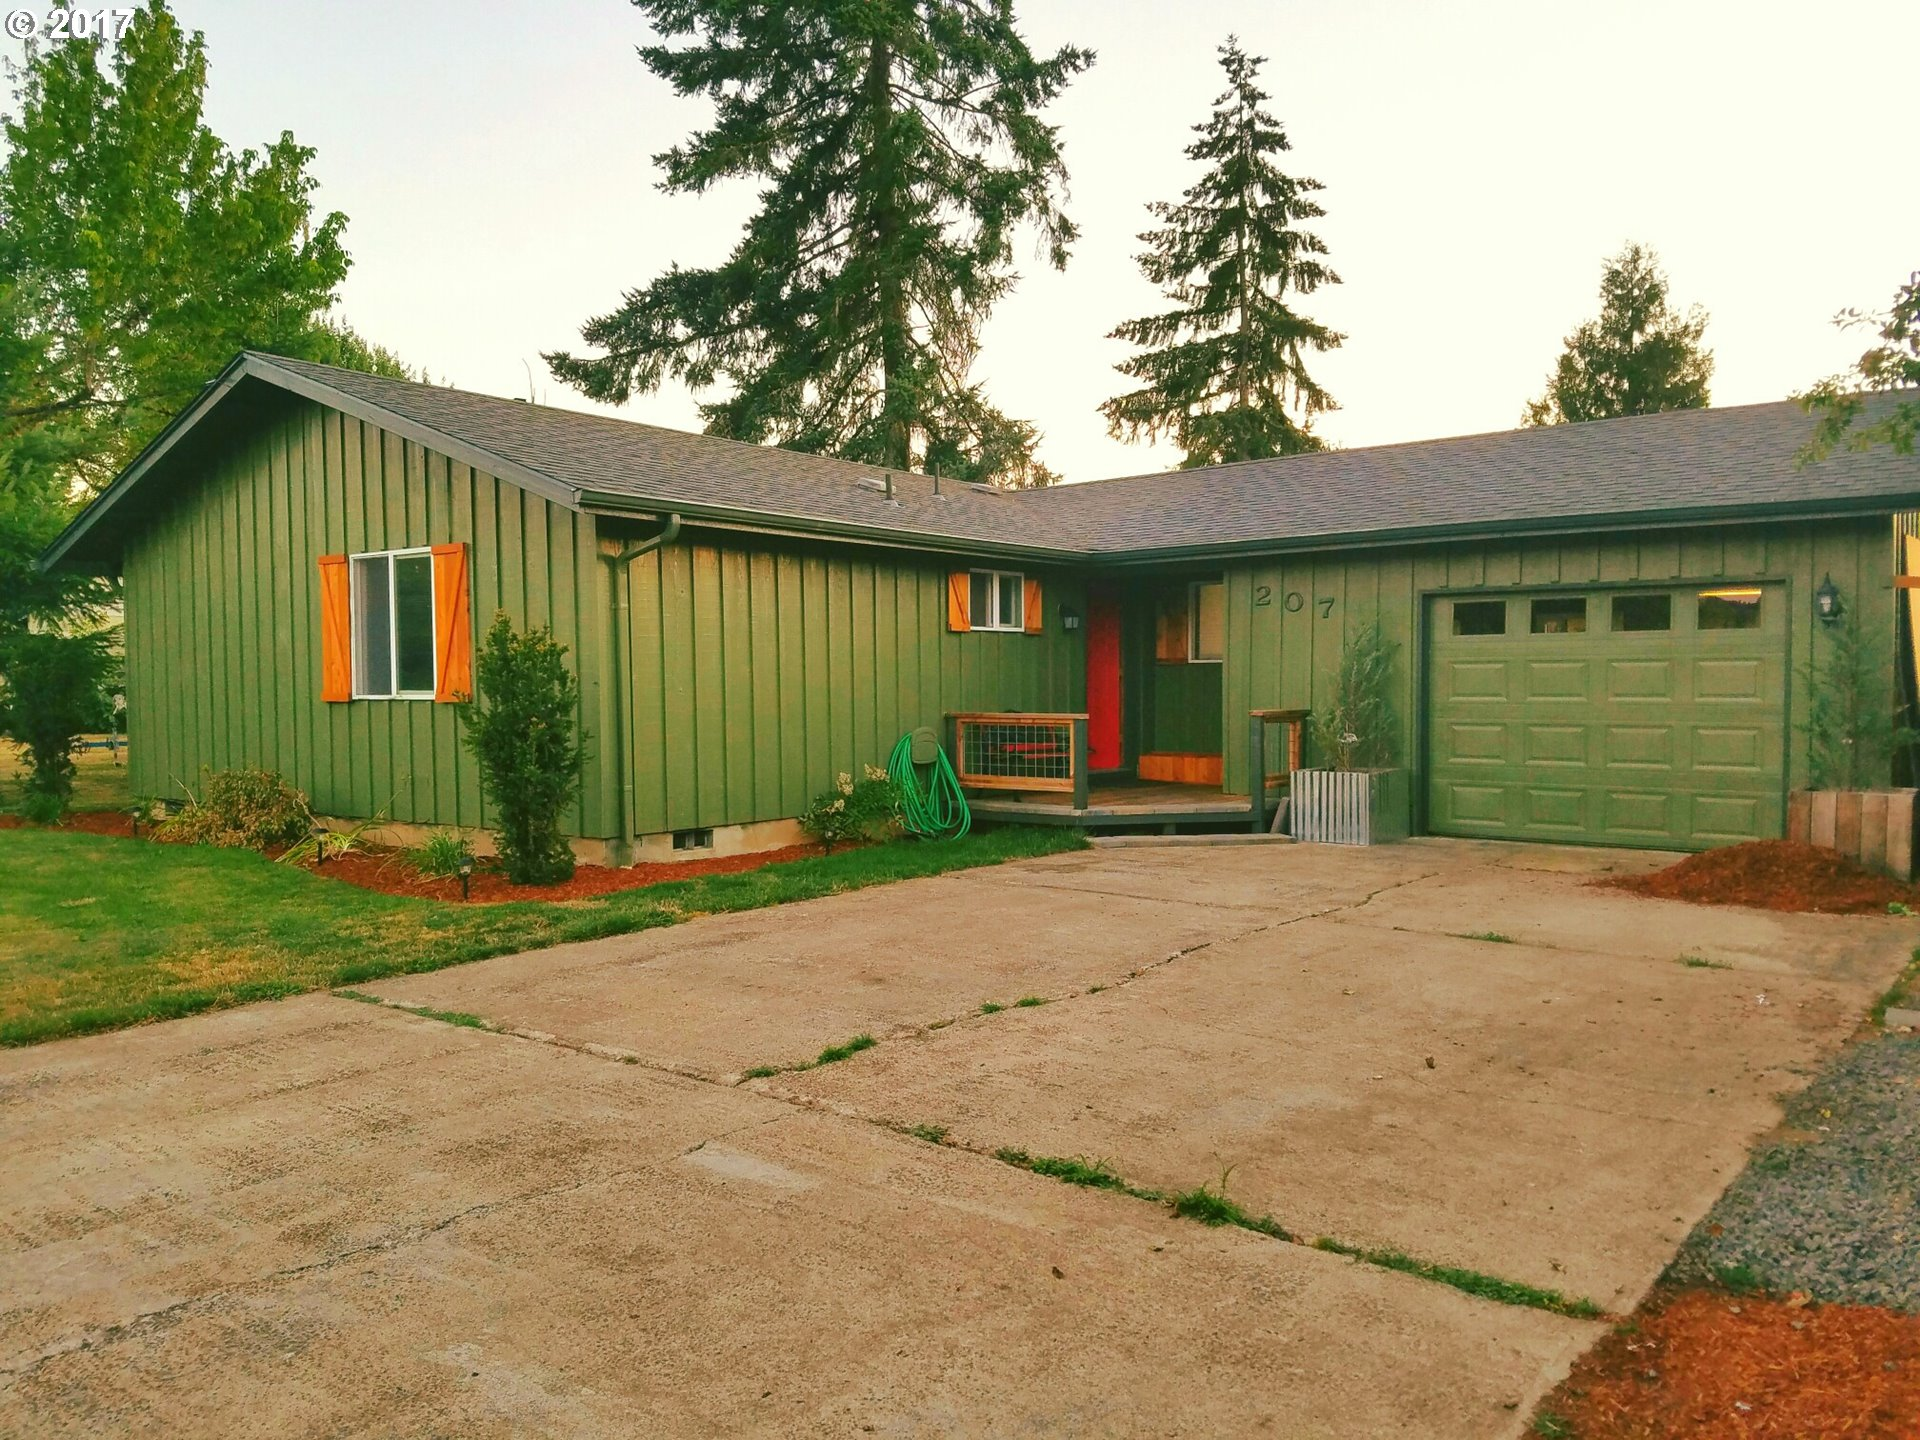 207 S R ST, Cottage Grove, OR 97424